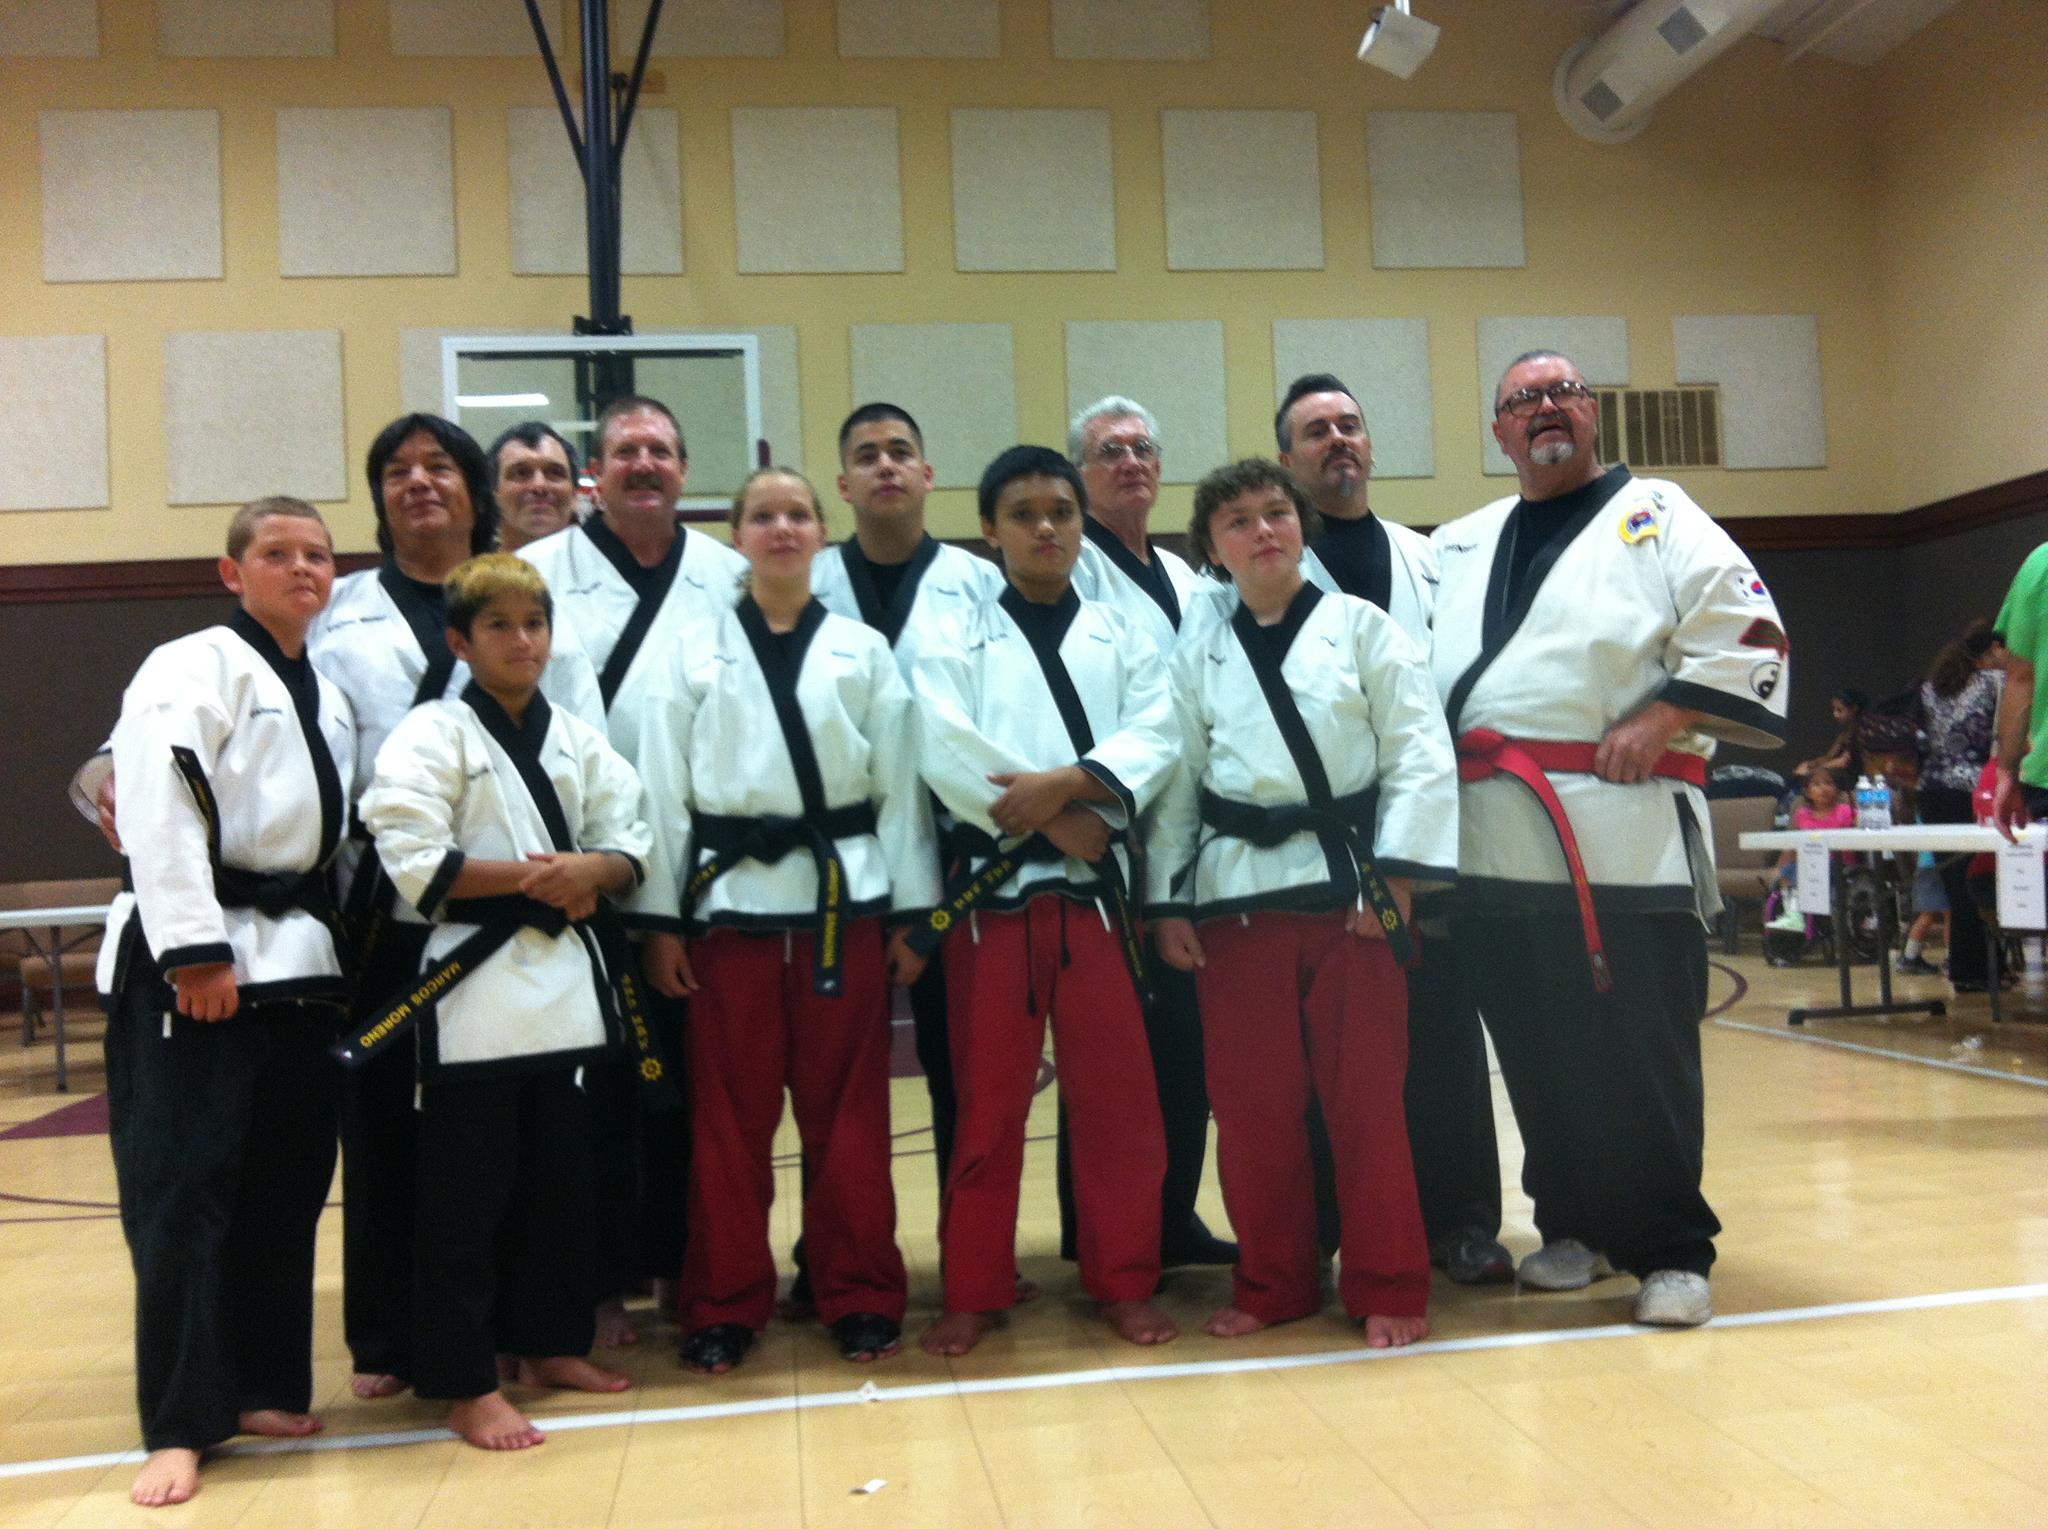 Should I quit college for a future in martial arts?